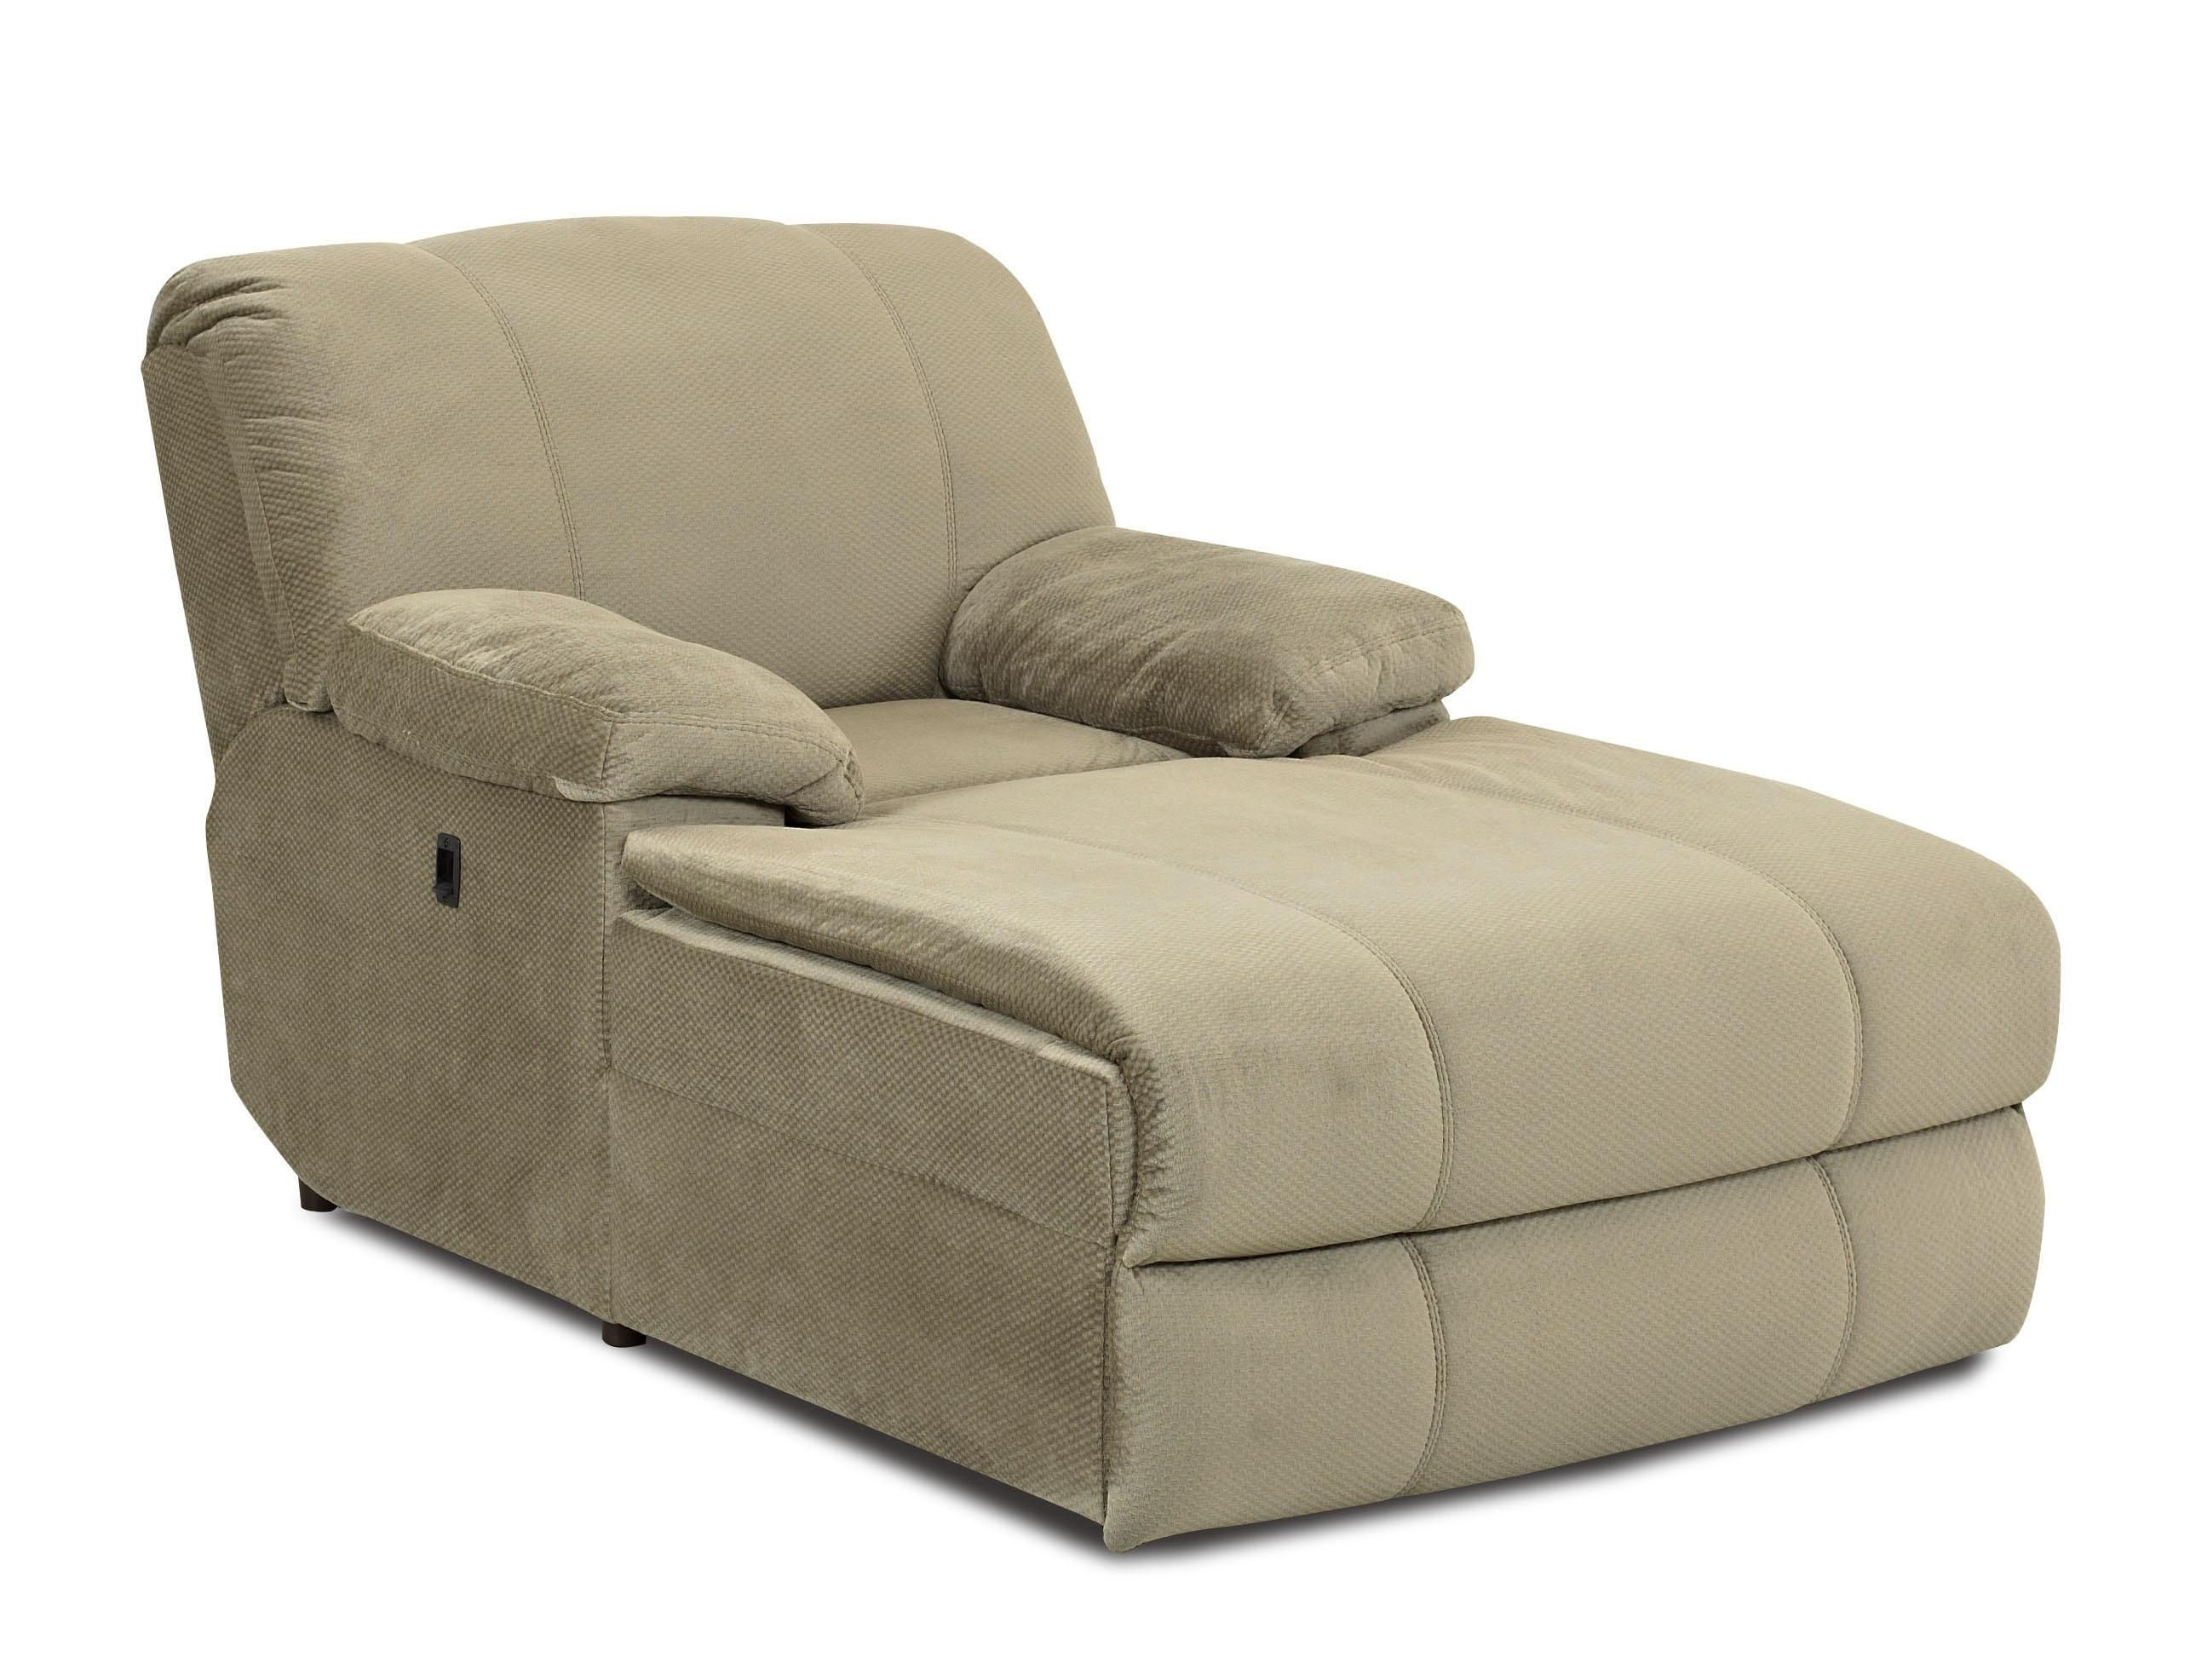 Kensington Reclining Chaise Lounge By Ellis Home